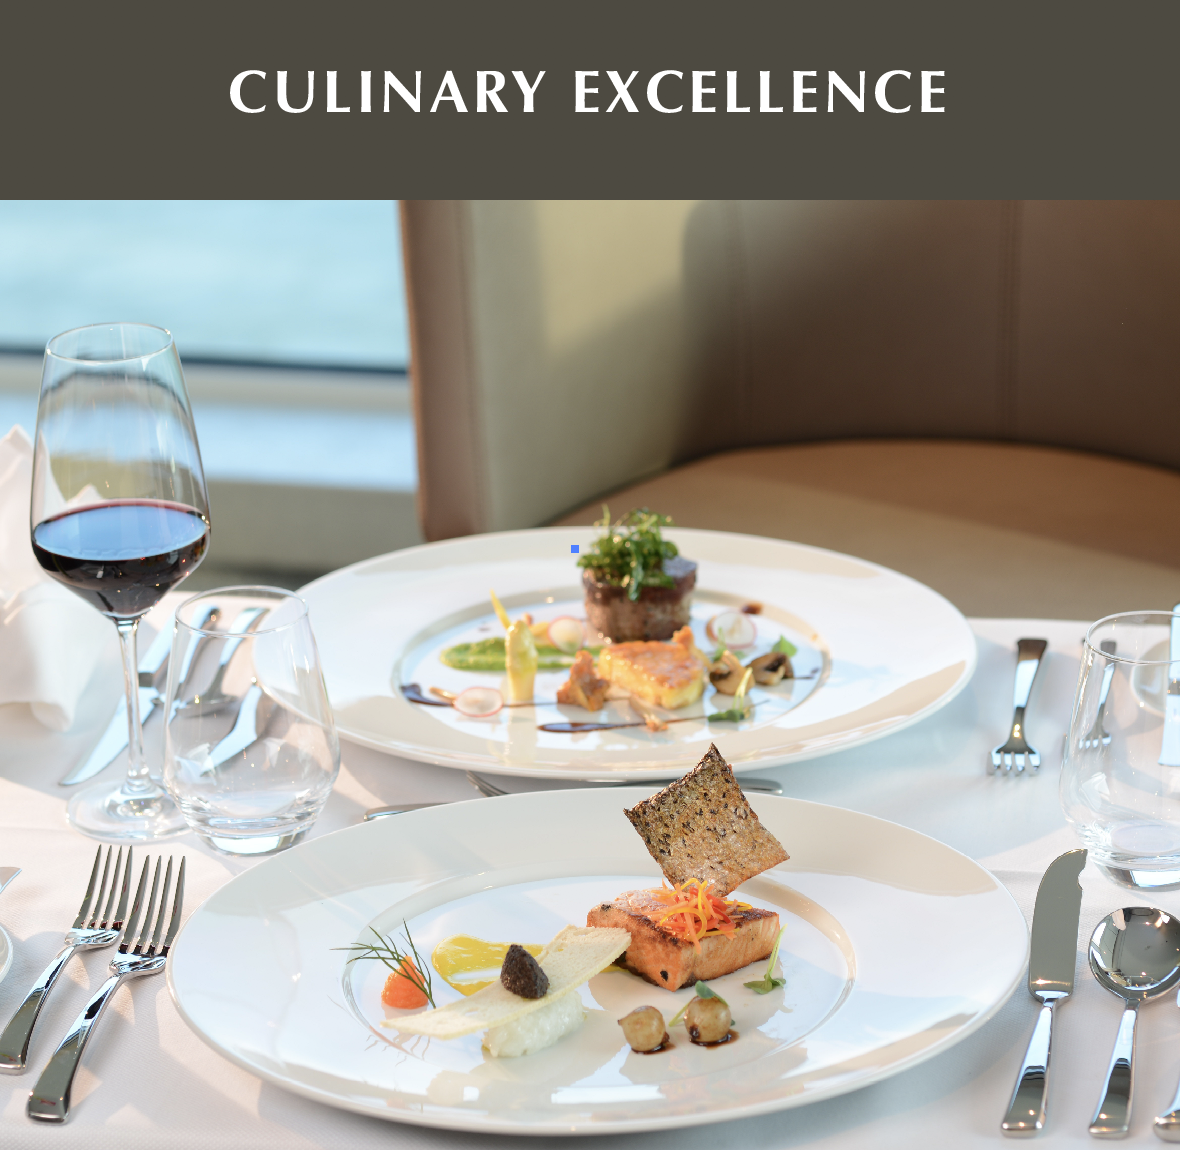 Our culinary program is designed to take you to the heart of Portugal. Savour local delicacies from land and sea, while dining in palaces, famed Port cellars, and world-class restaurants.